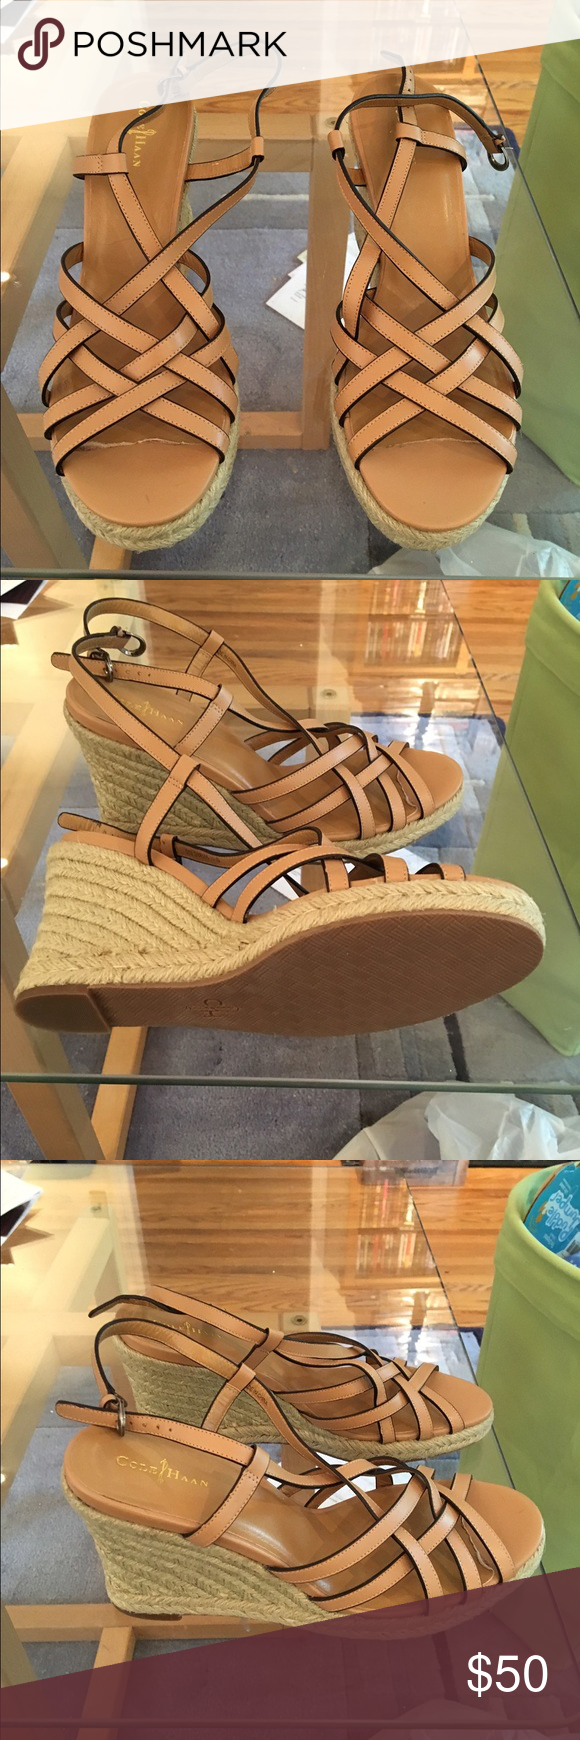 Cole Haan Tan Wedge Sandal - new! Cole Haan Tan Wedge Sandal - new! Never worn. Strapped leather wedge. Size 10.5. Cole Haan Shoes Wedges